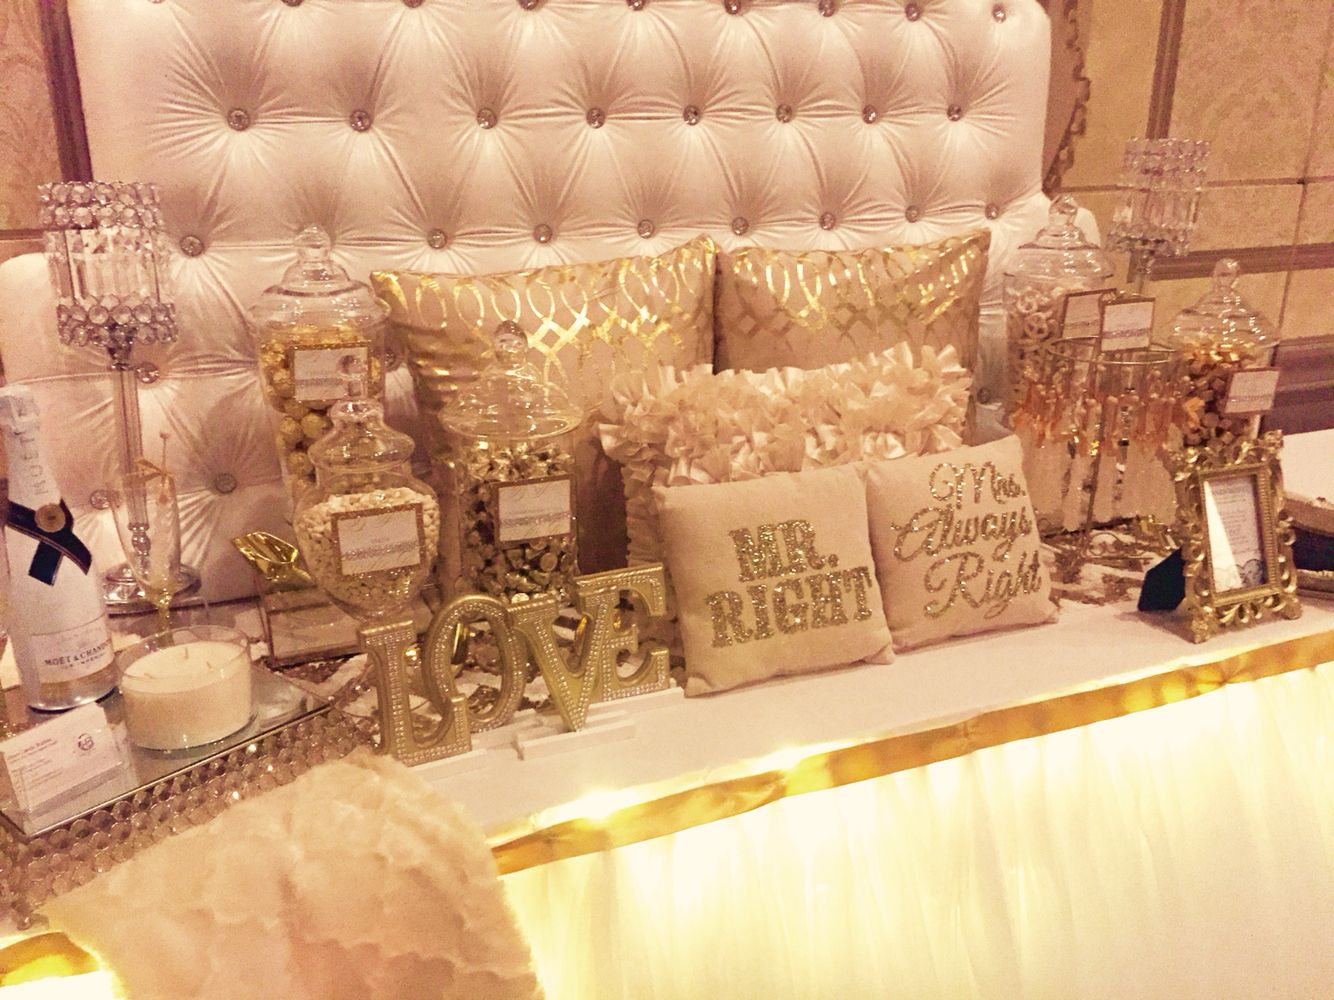 Sweet amp sparkly wedding candy buffet pictures to pin on pinterest - Sweets Table For A Wedding Reception Designed By Glam Candy Buffets Headboard By Prissy Sweet